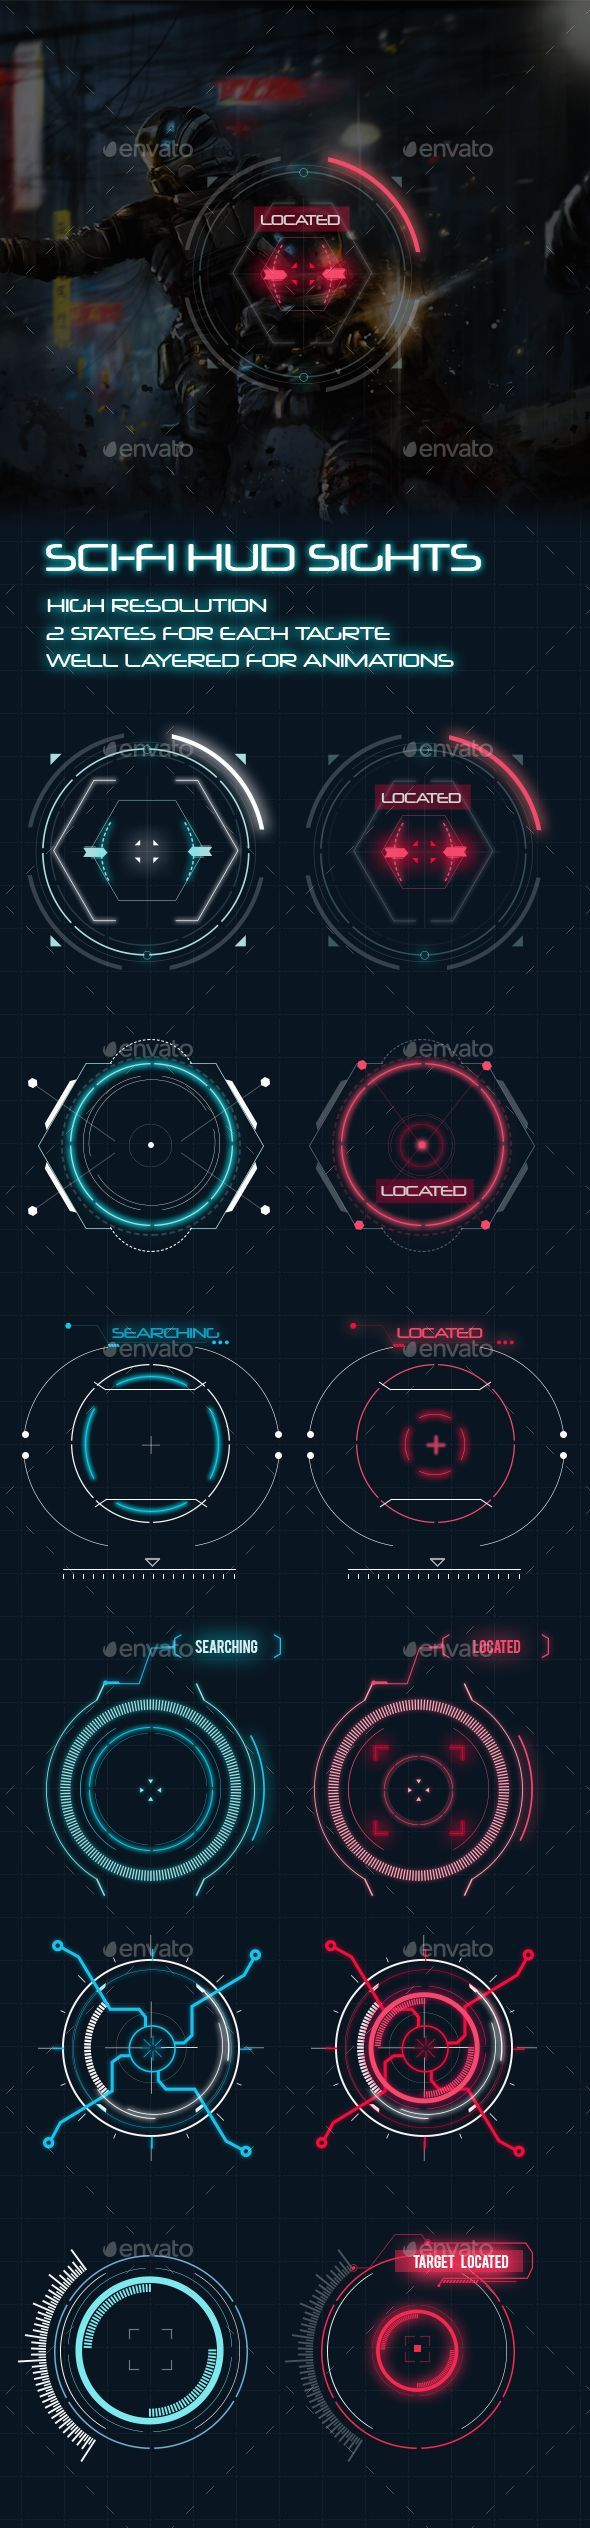 Sci-Fi HUD Elements for Games - Miscellaneous Game Assets